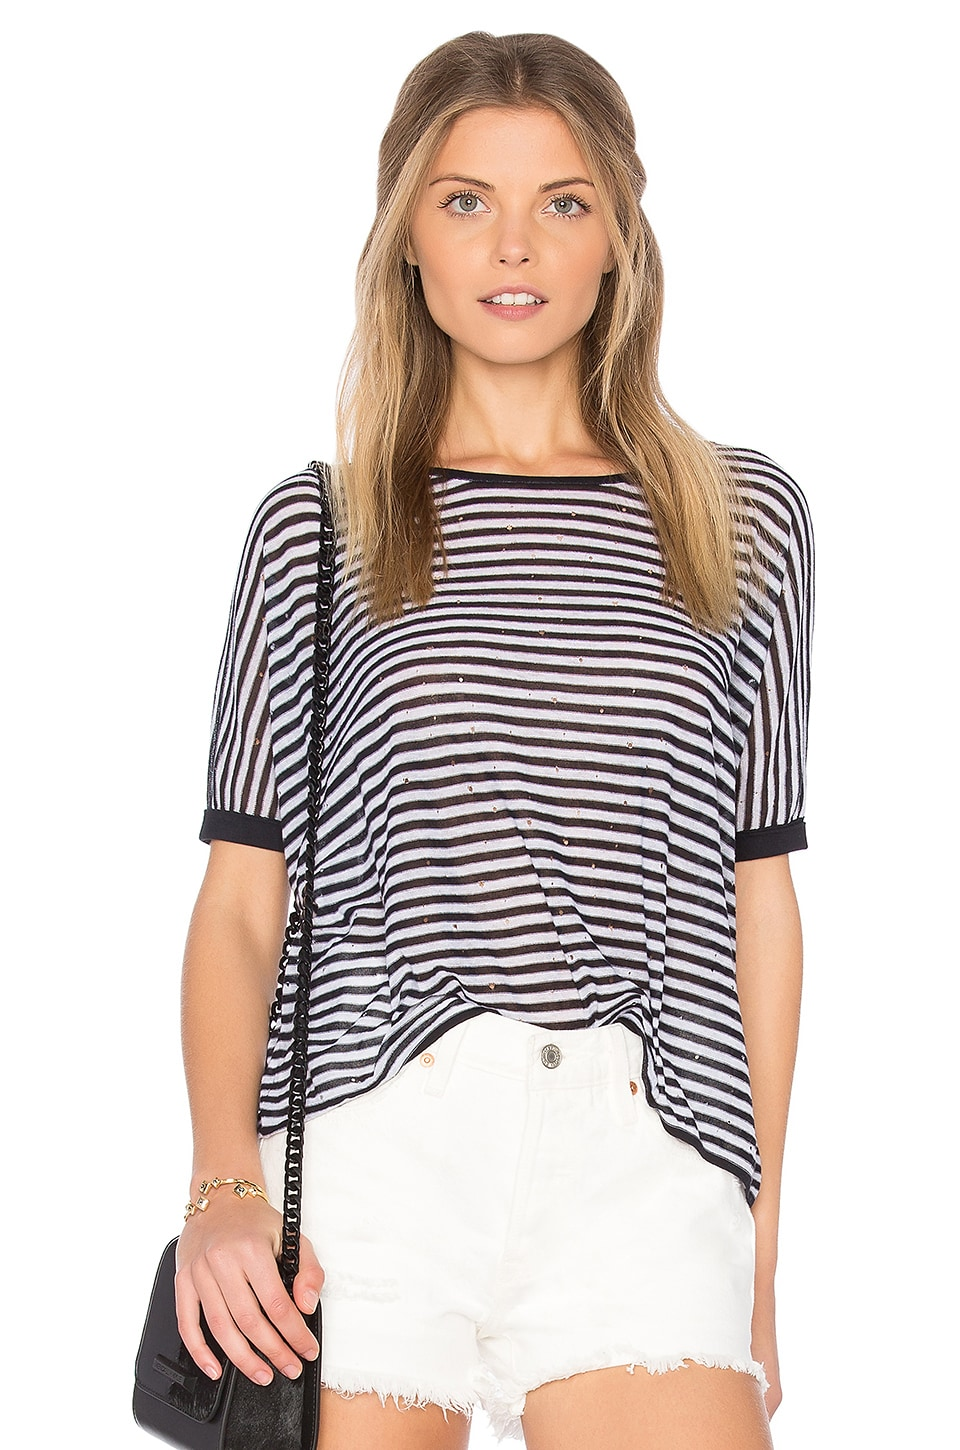 Autumn Cashmere Stripe Distressed Crop Tee in Navy Blue & Platinum